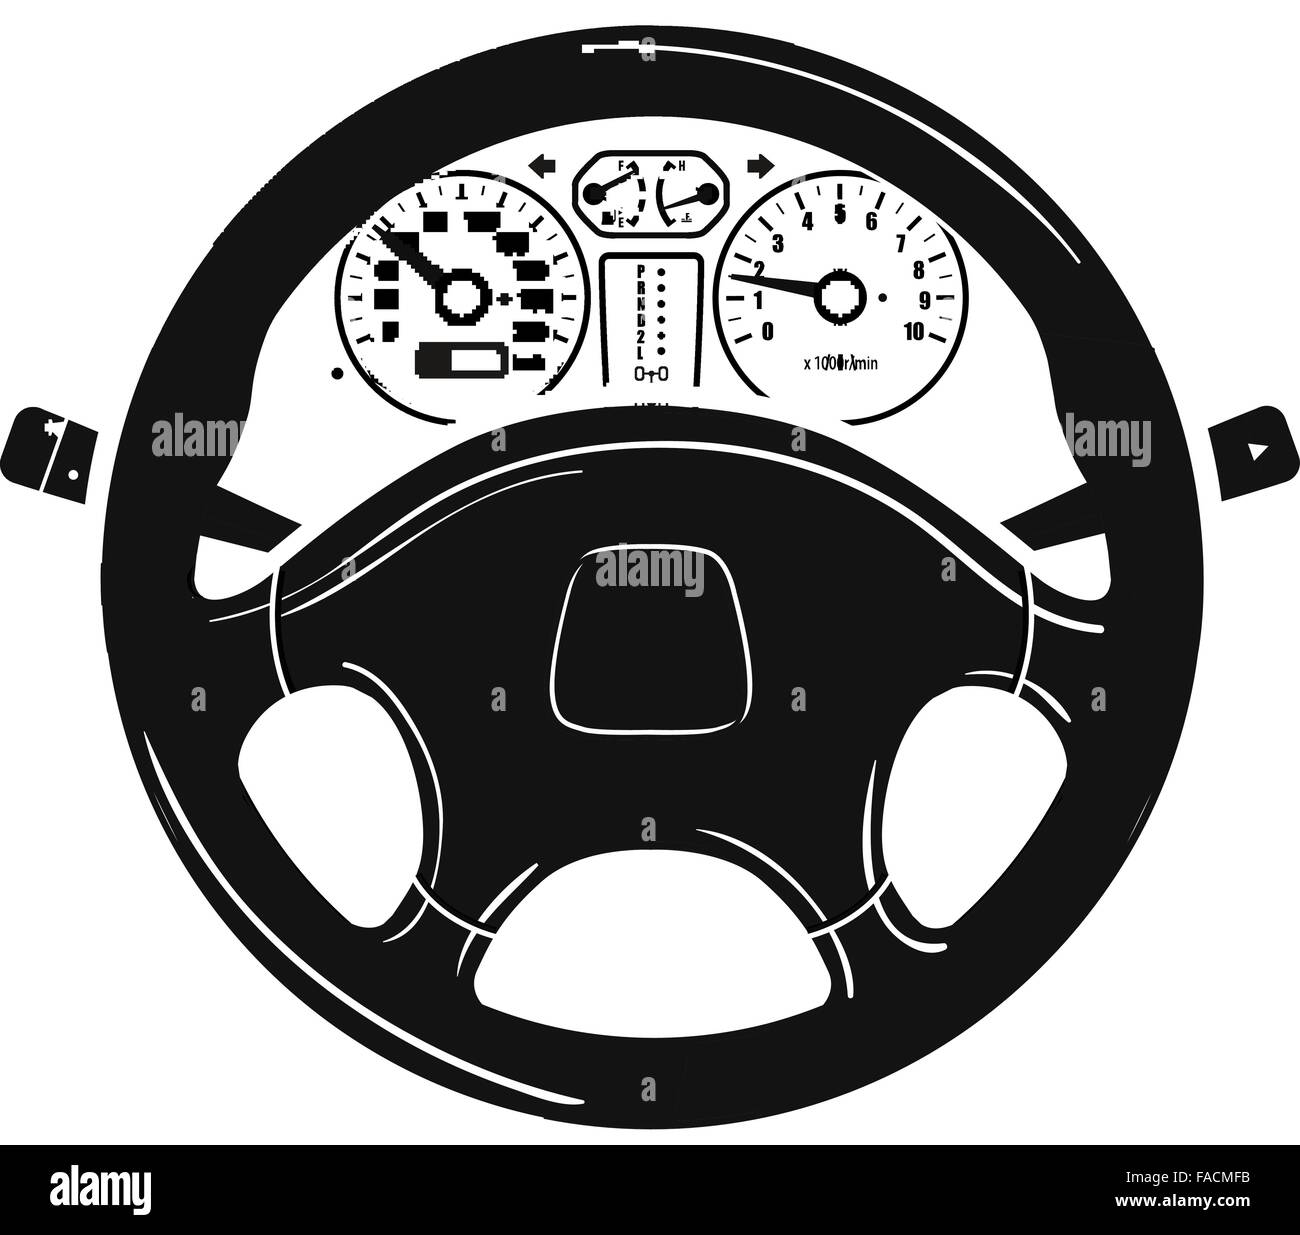 car steering wheel vector logo design template vehicle automobile stock vector image art alamy https www alamy com stock photo car steering wheel vector logo design template vehicle automobile 92477935 html